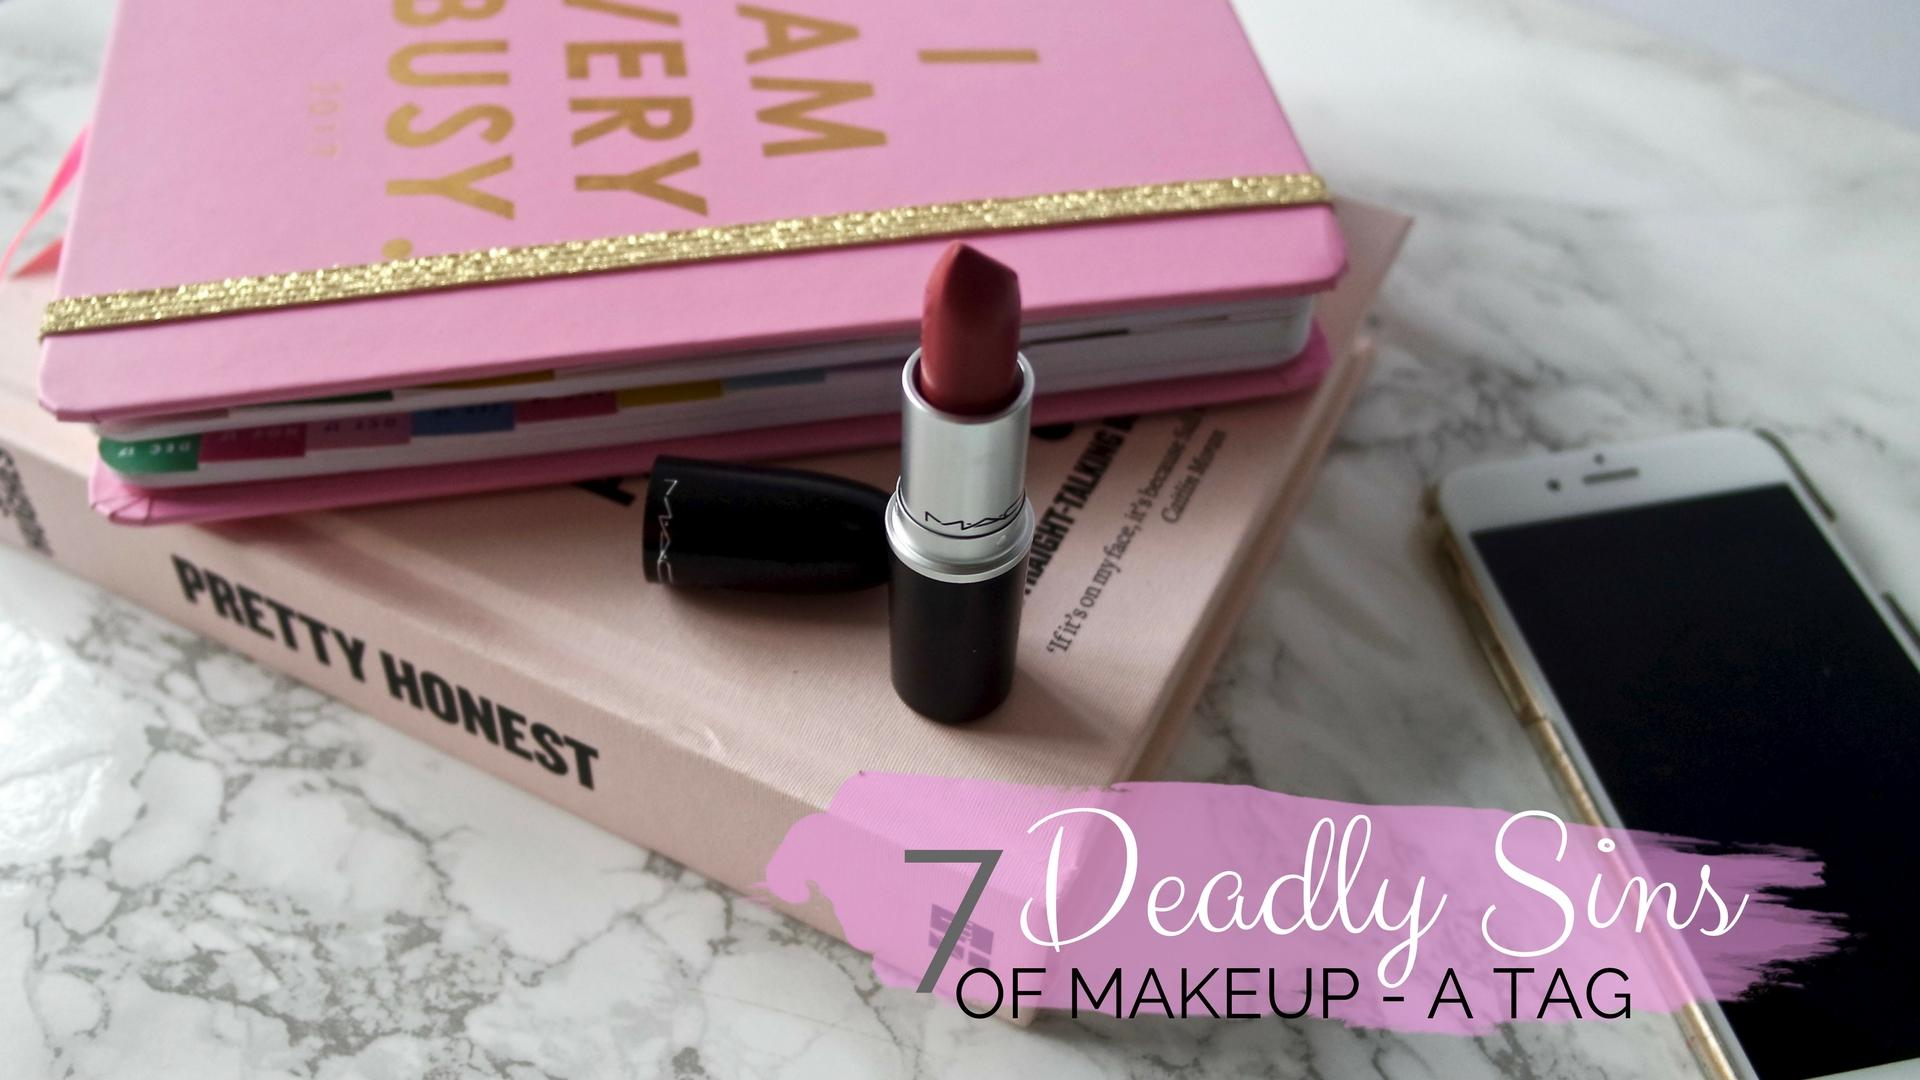 7 Deadly Sins Of Makeup Tag || Beauty